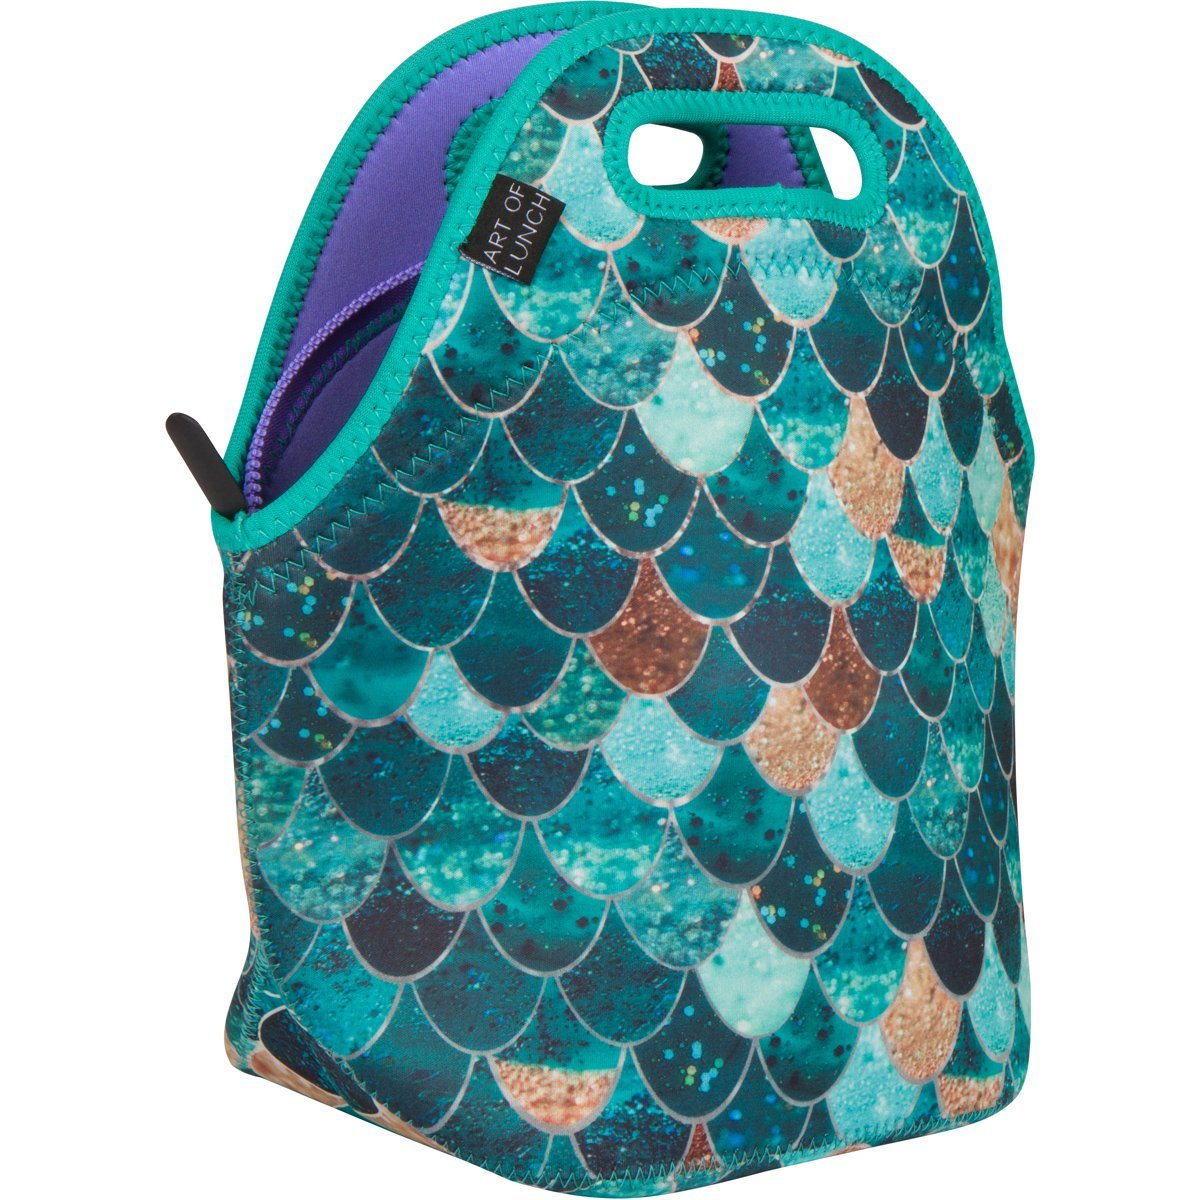 Art of Lunch Insulated Neoprene Lunch Bag for Women and Kids - Artist Monika Strigel (Germany) and Art of Liv'n have Partnered to donate $.40 per sale to Pacific Whale Foundation - Really Mermaid by Art of Lunch